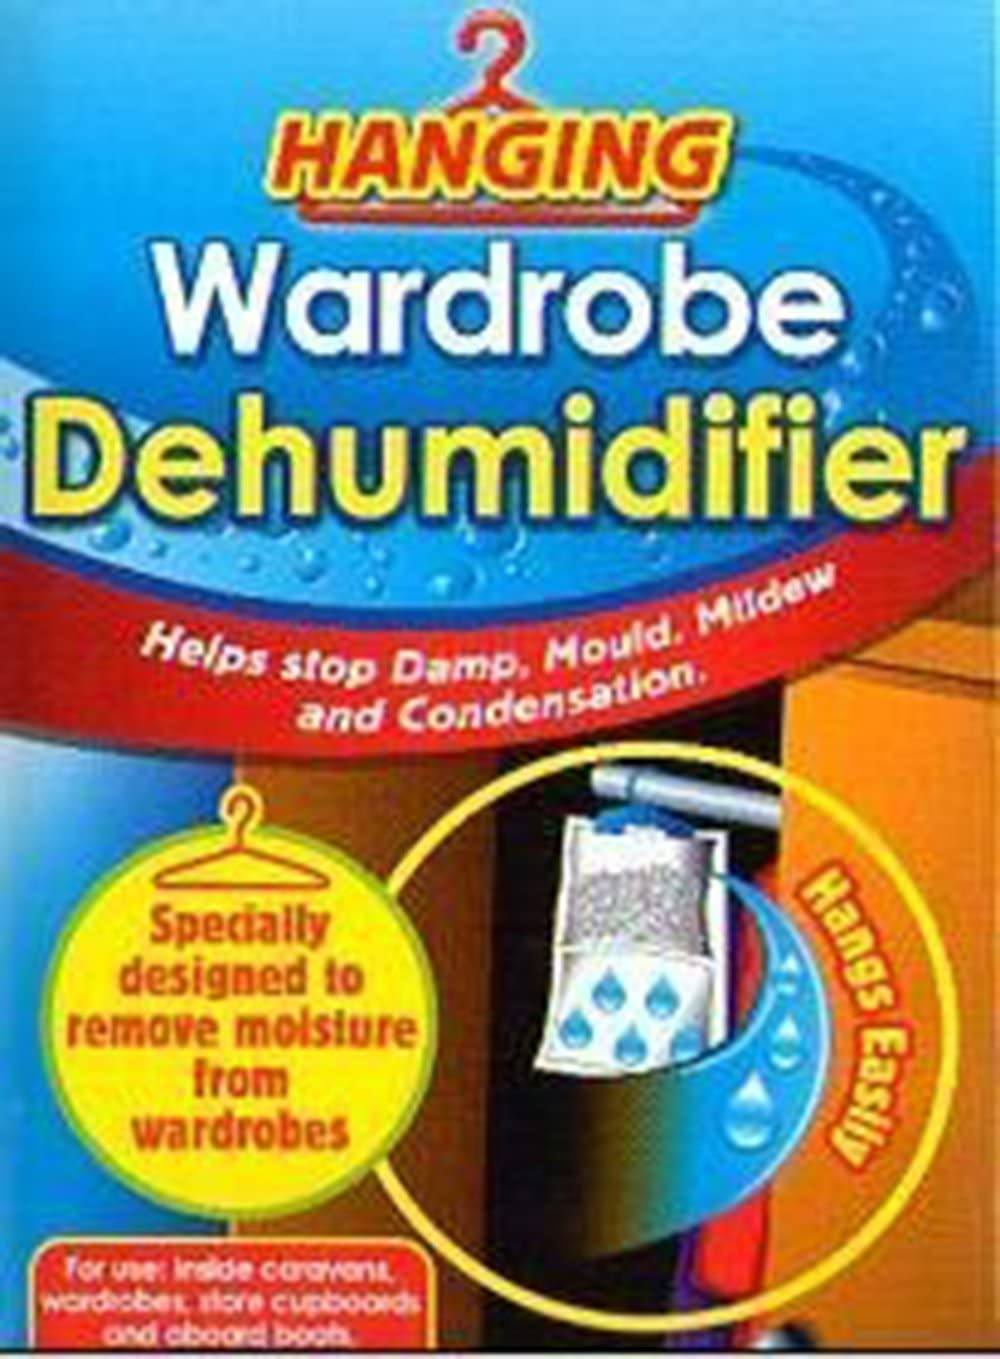 Helps Stop Damp 3x3 X Interior Hanging Wardrobe Dehumidifier By AirWise